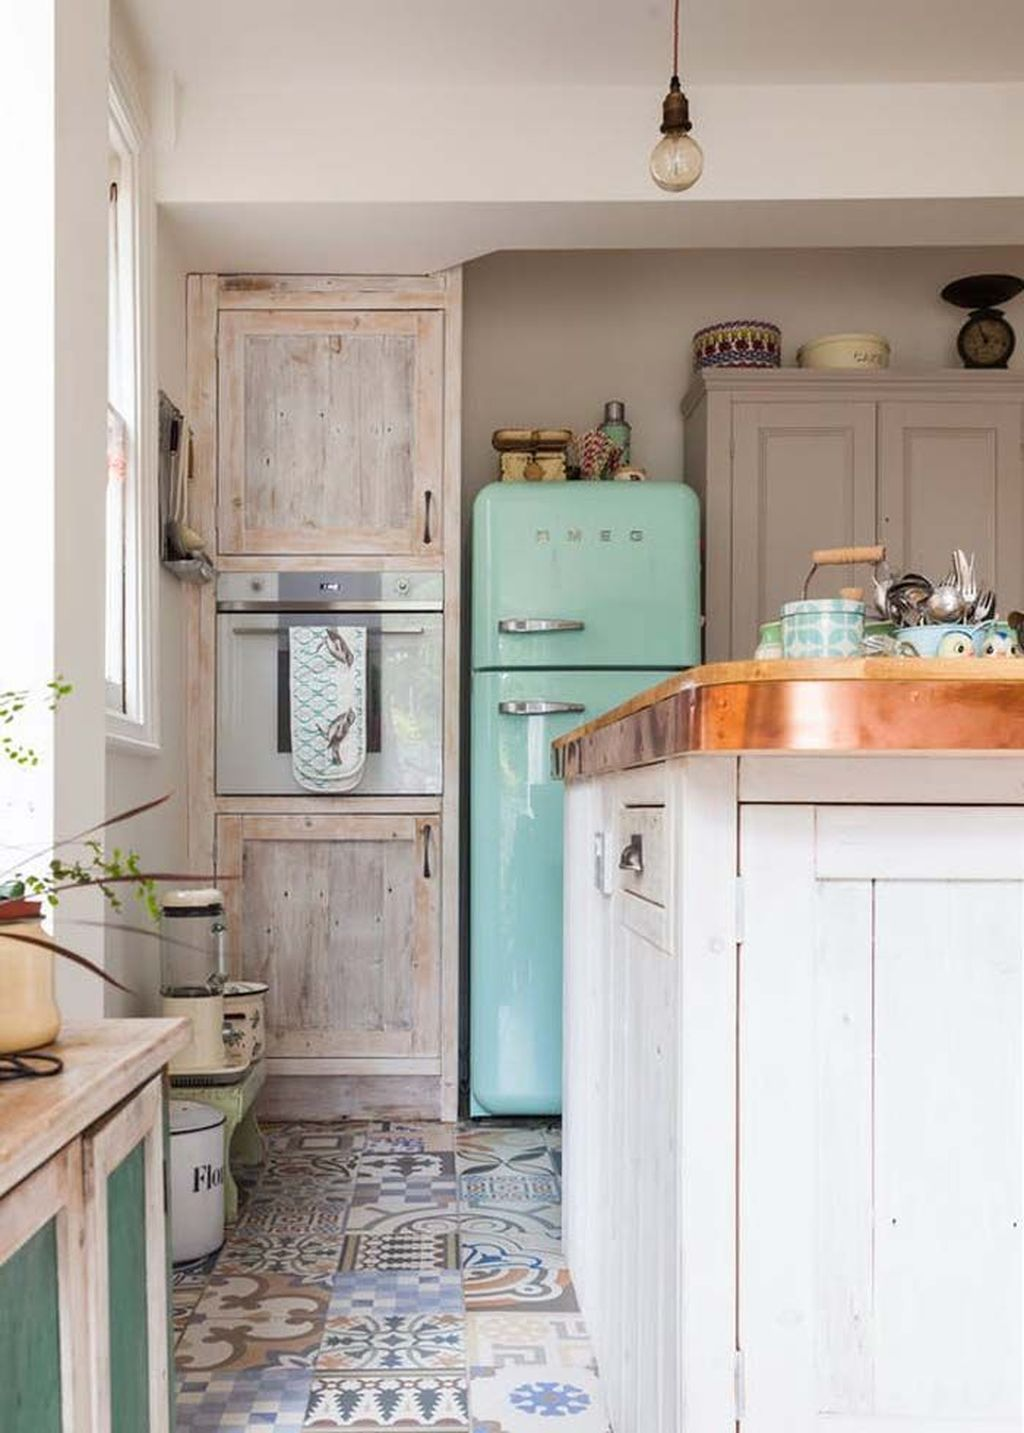 45 gorgeous bohemian style kitchen makeover ideas kitchen inspirations chic kitchen home on boho chic home decor kitchen id=30560